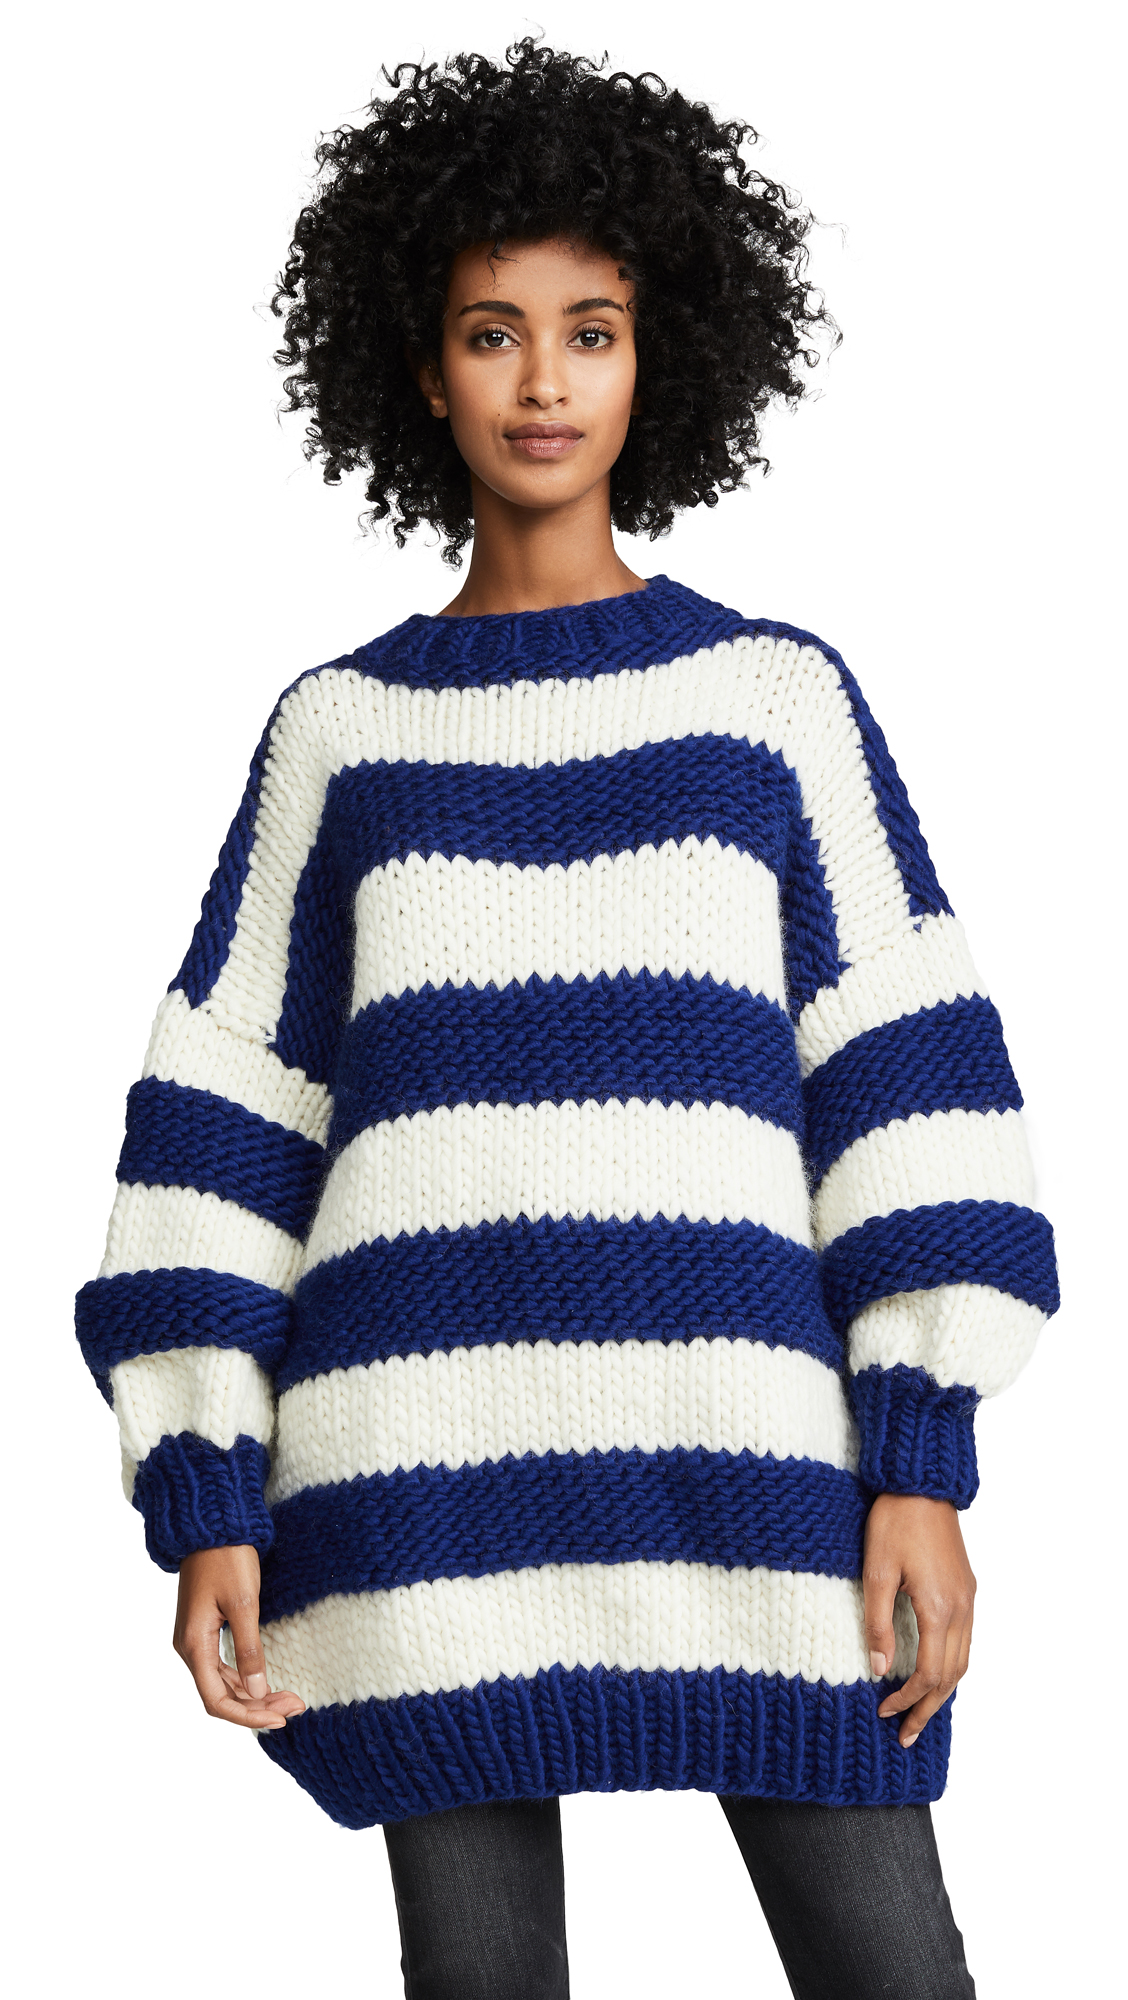 I LOVE MR. MITTENS Striped Crew Neck Sweater in Navy/Cream